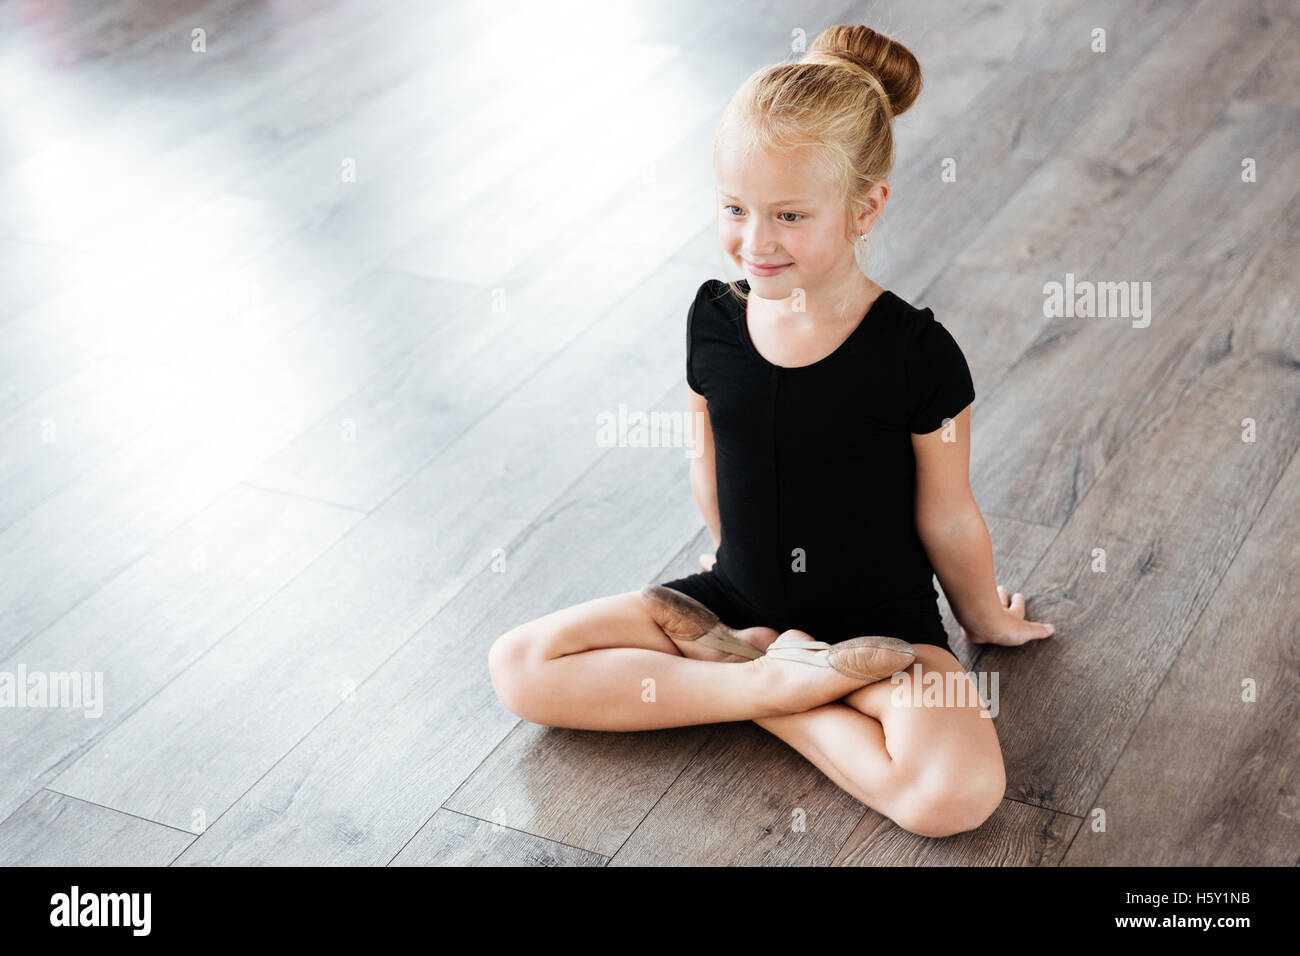 Leg Pic Cute Girl